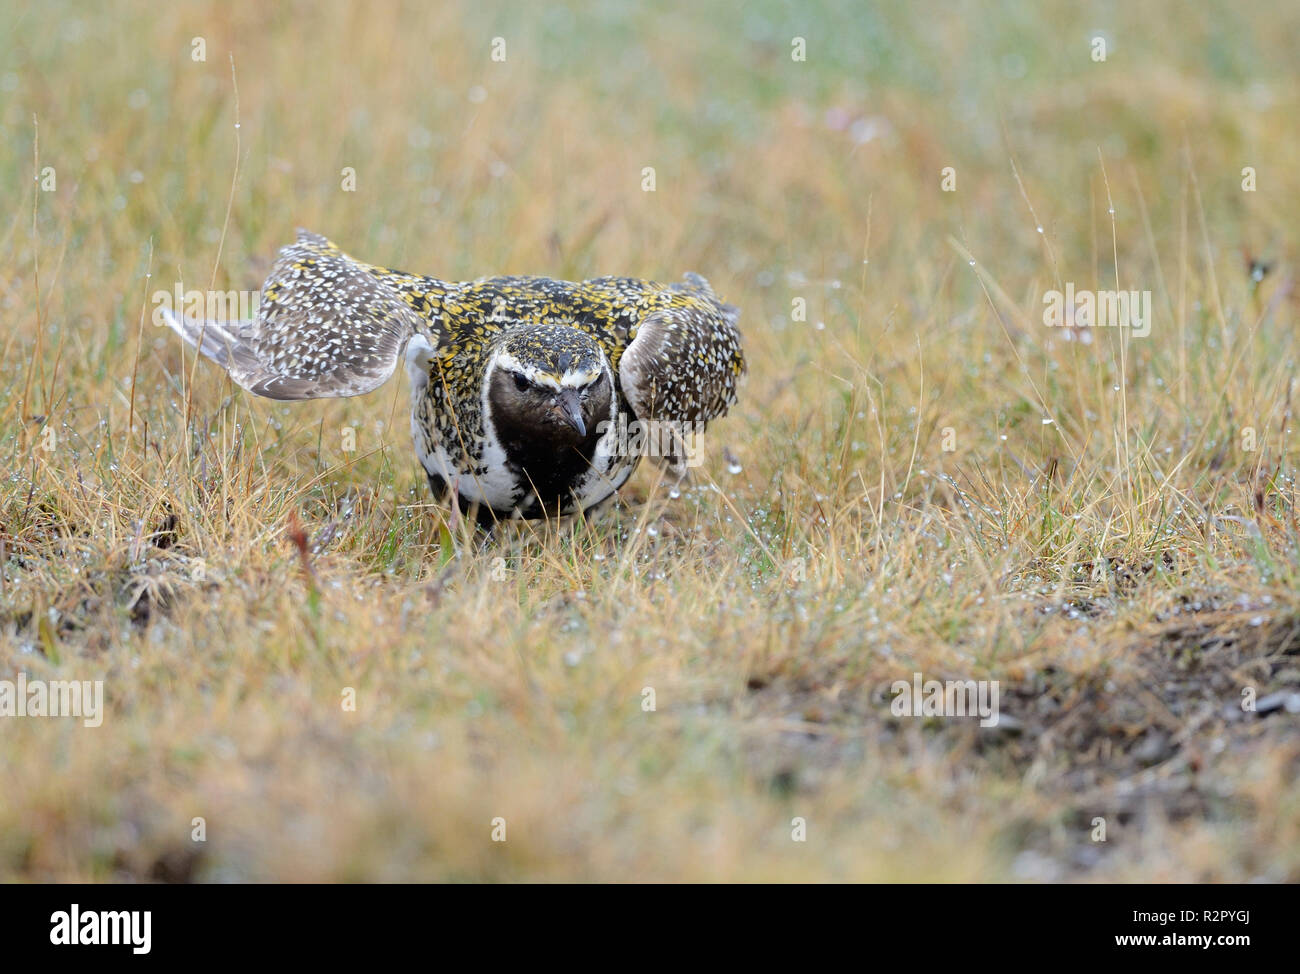 Eurasian golden plover, Pluvialis apricaria, distracting predators, Iceland - Stock Image